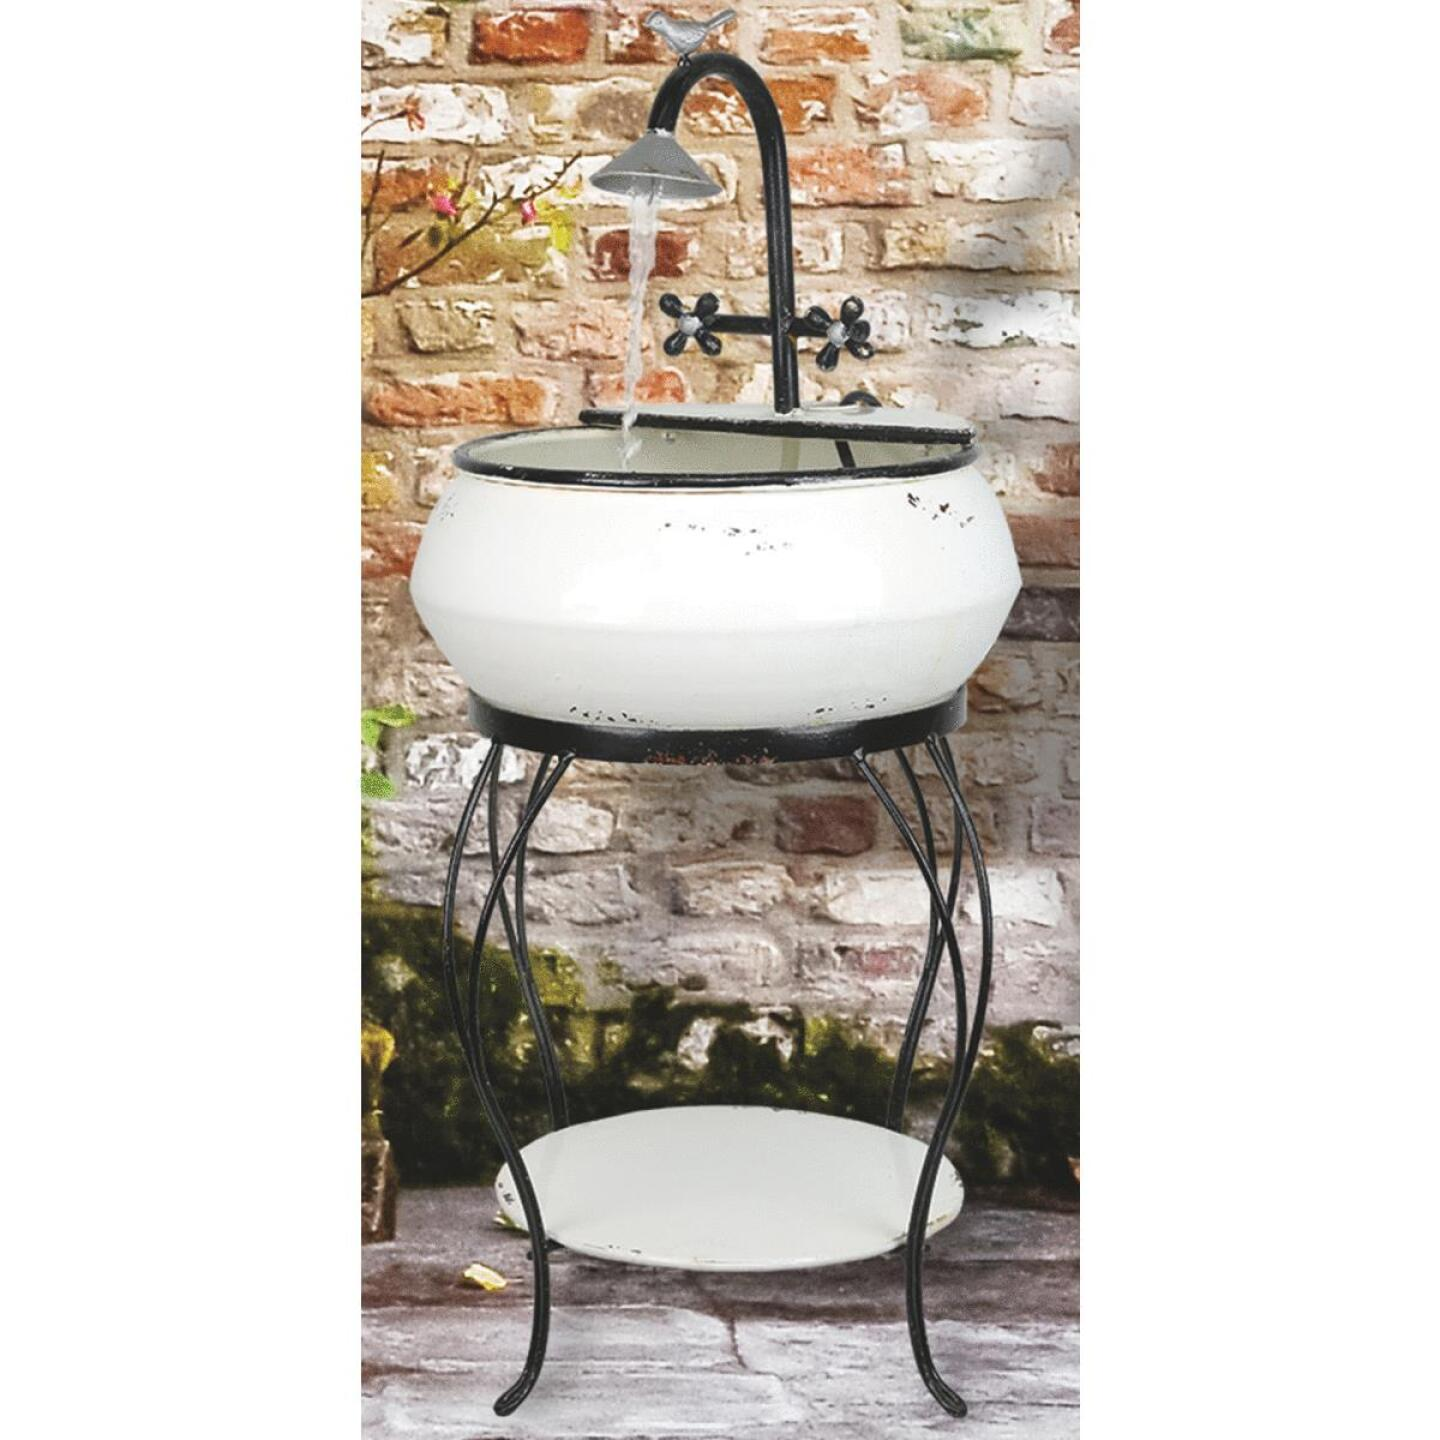 Alpine 16 In. W. x 32 In. H. x 16 In. L. Iron Vintage Sink Fountain Image 1